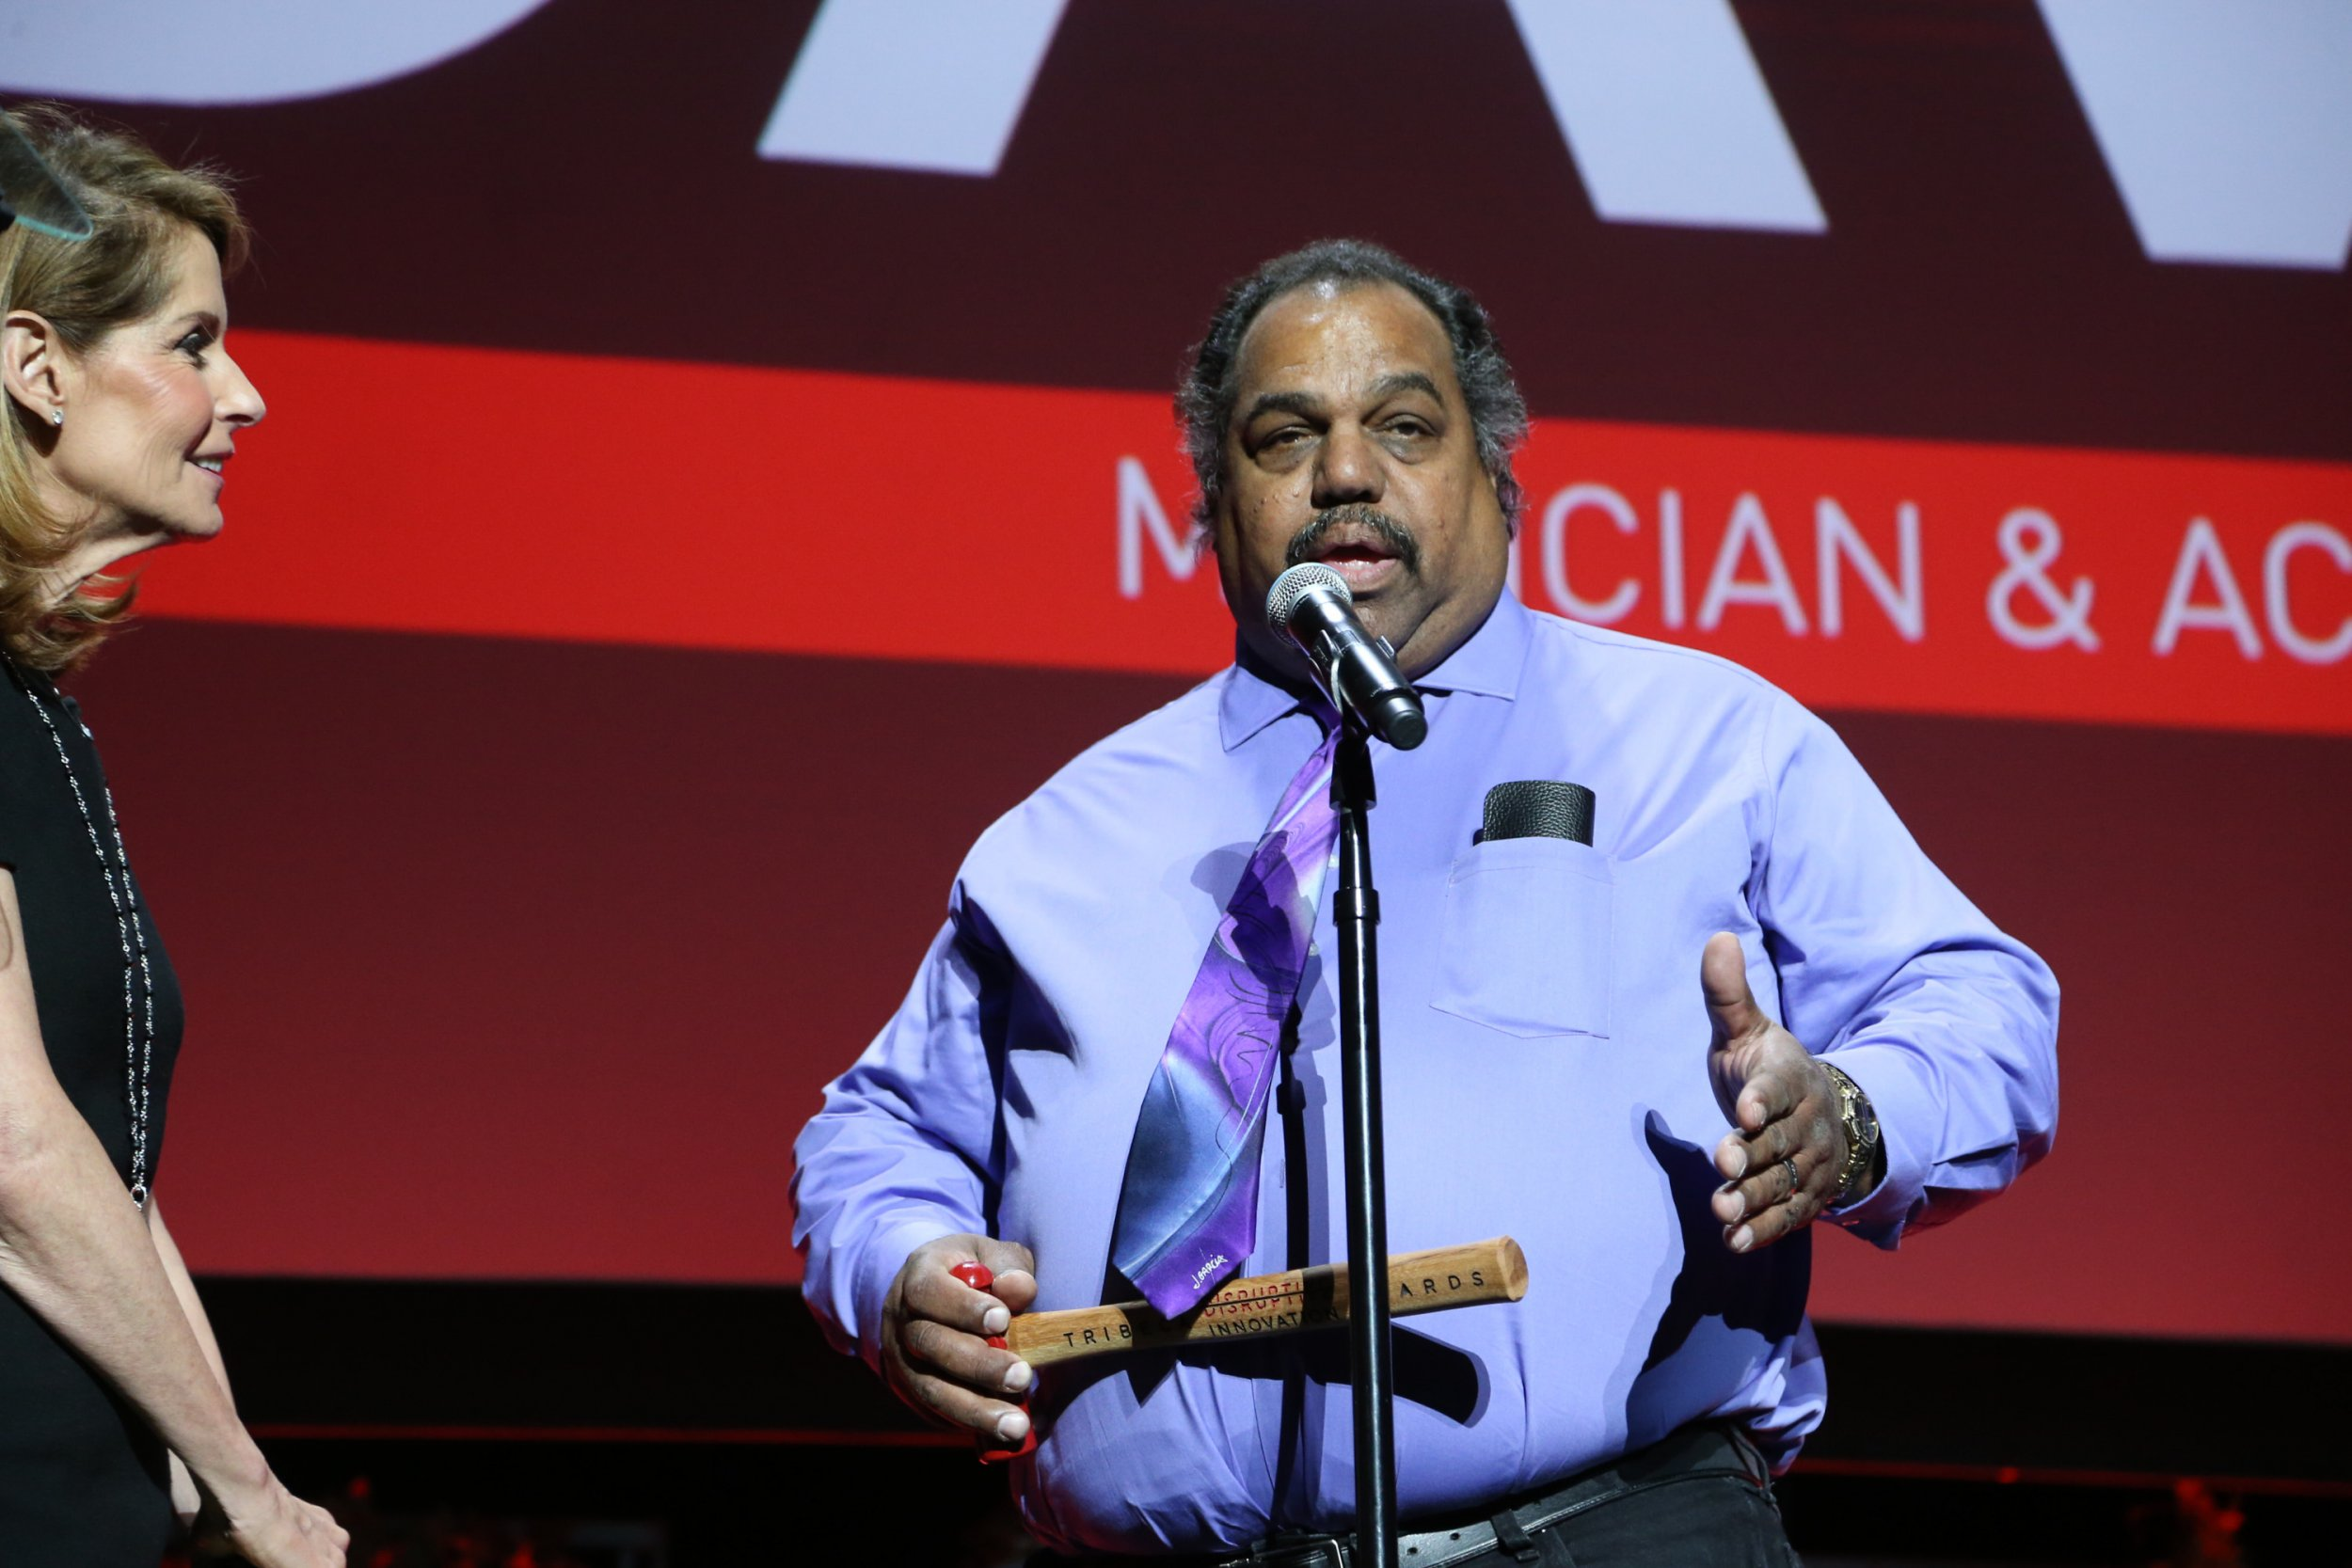 Daryl Davis on turning people away from racism